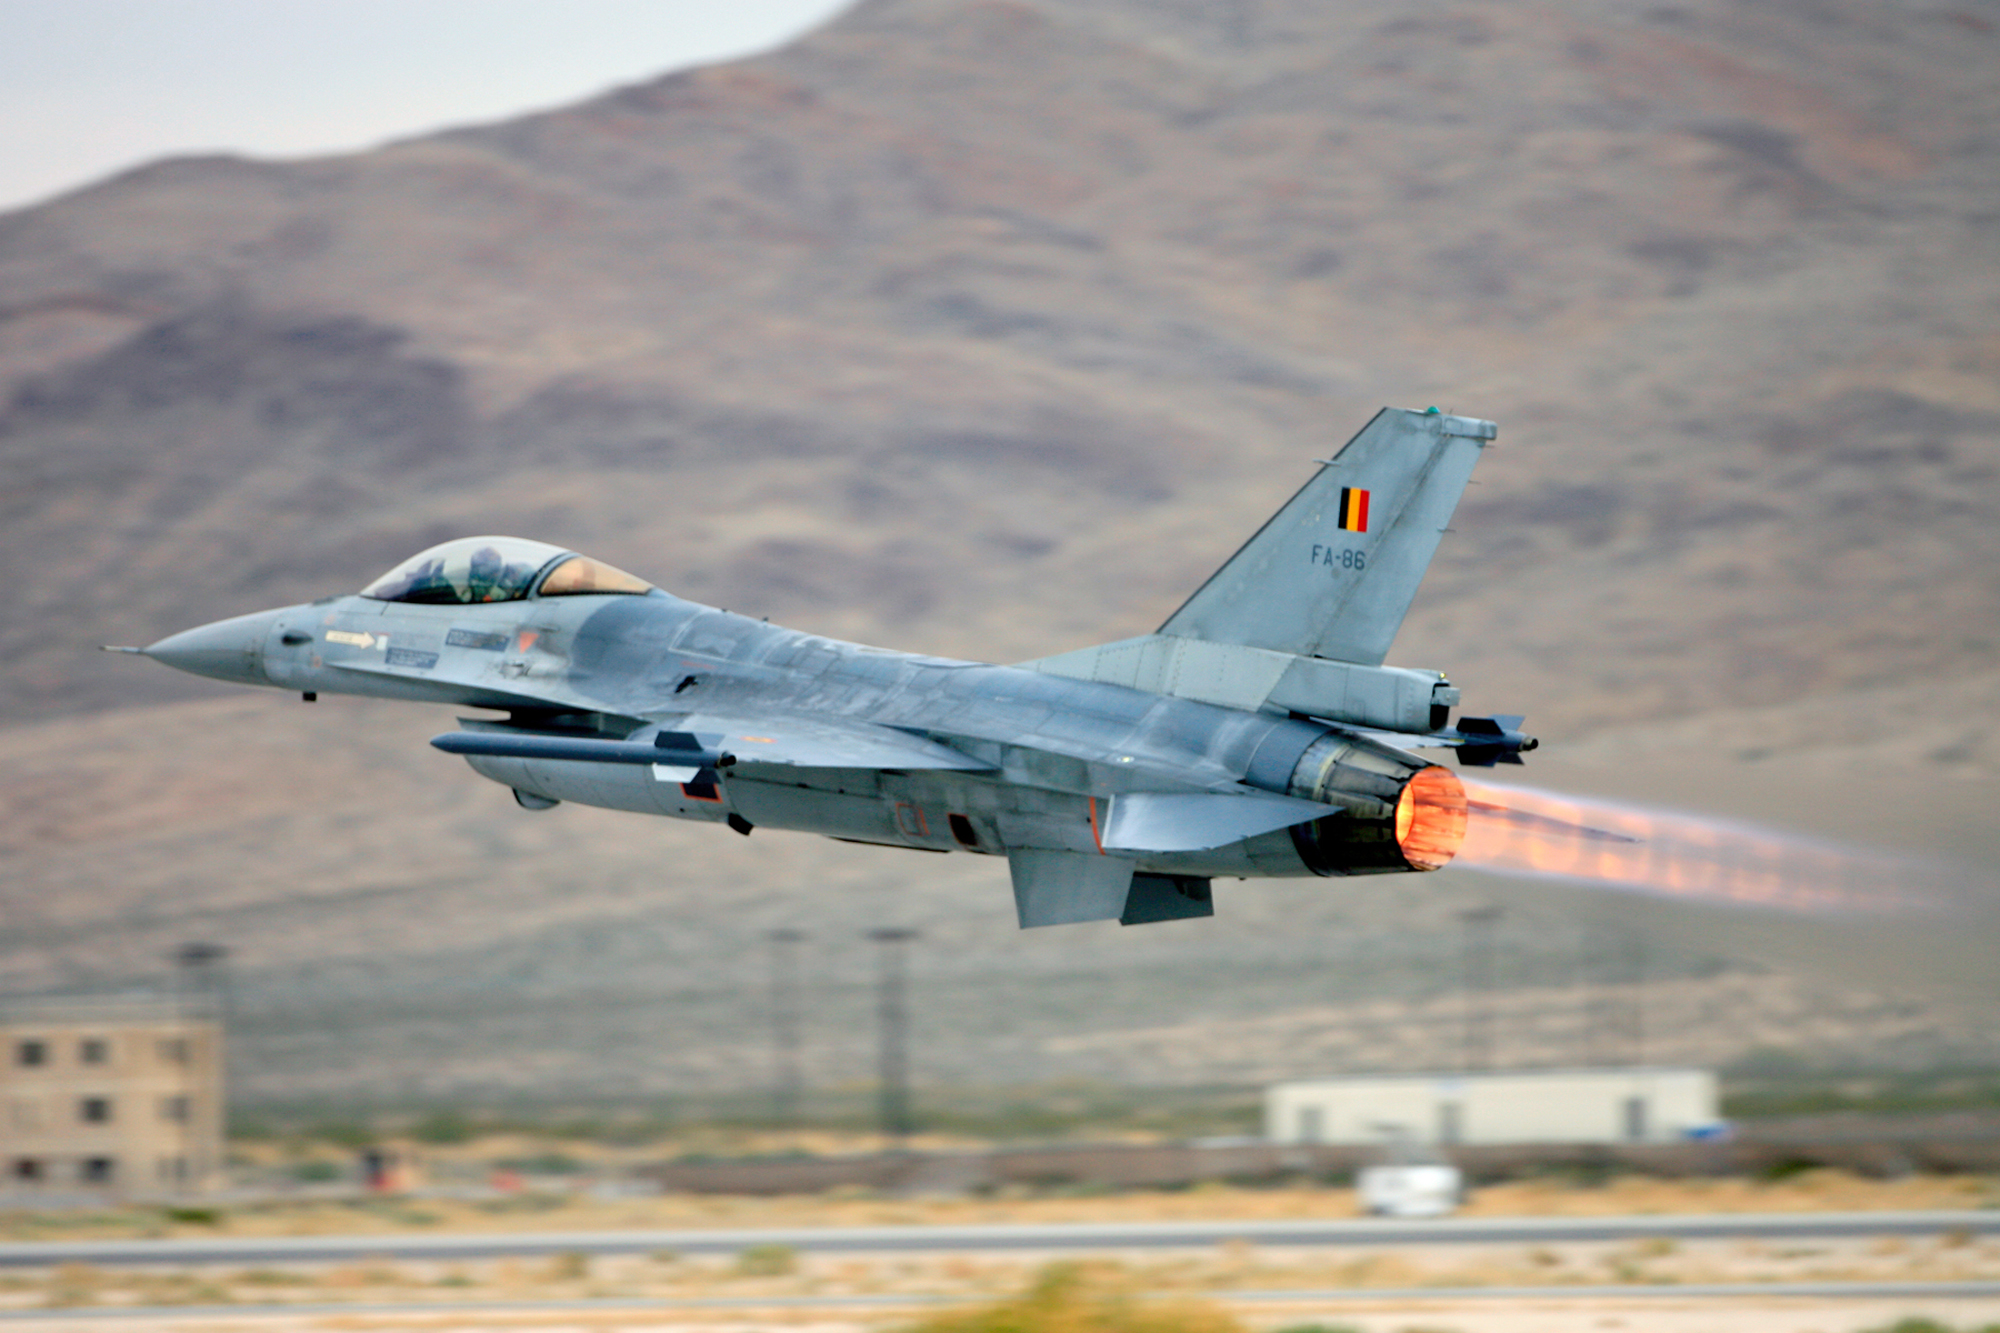 A Belgian air force F-16 Fighting Falcon takes off with full afterburning power.